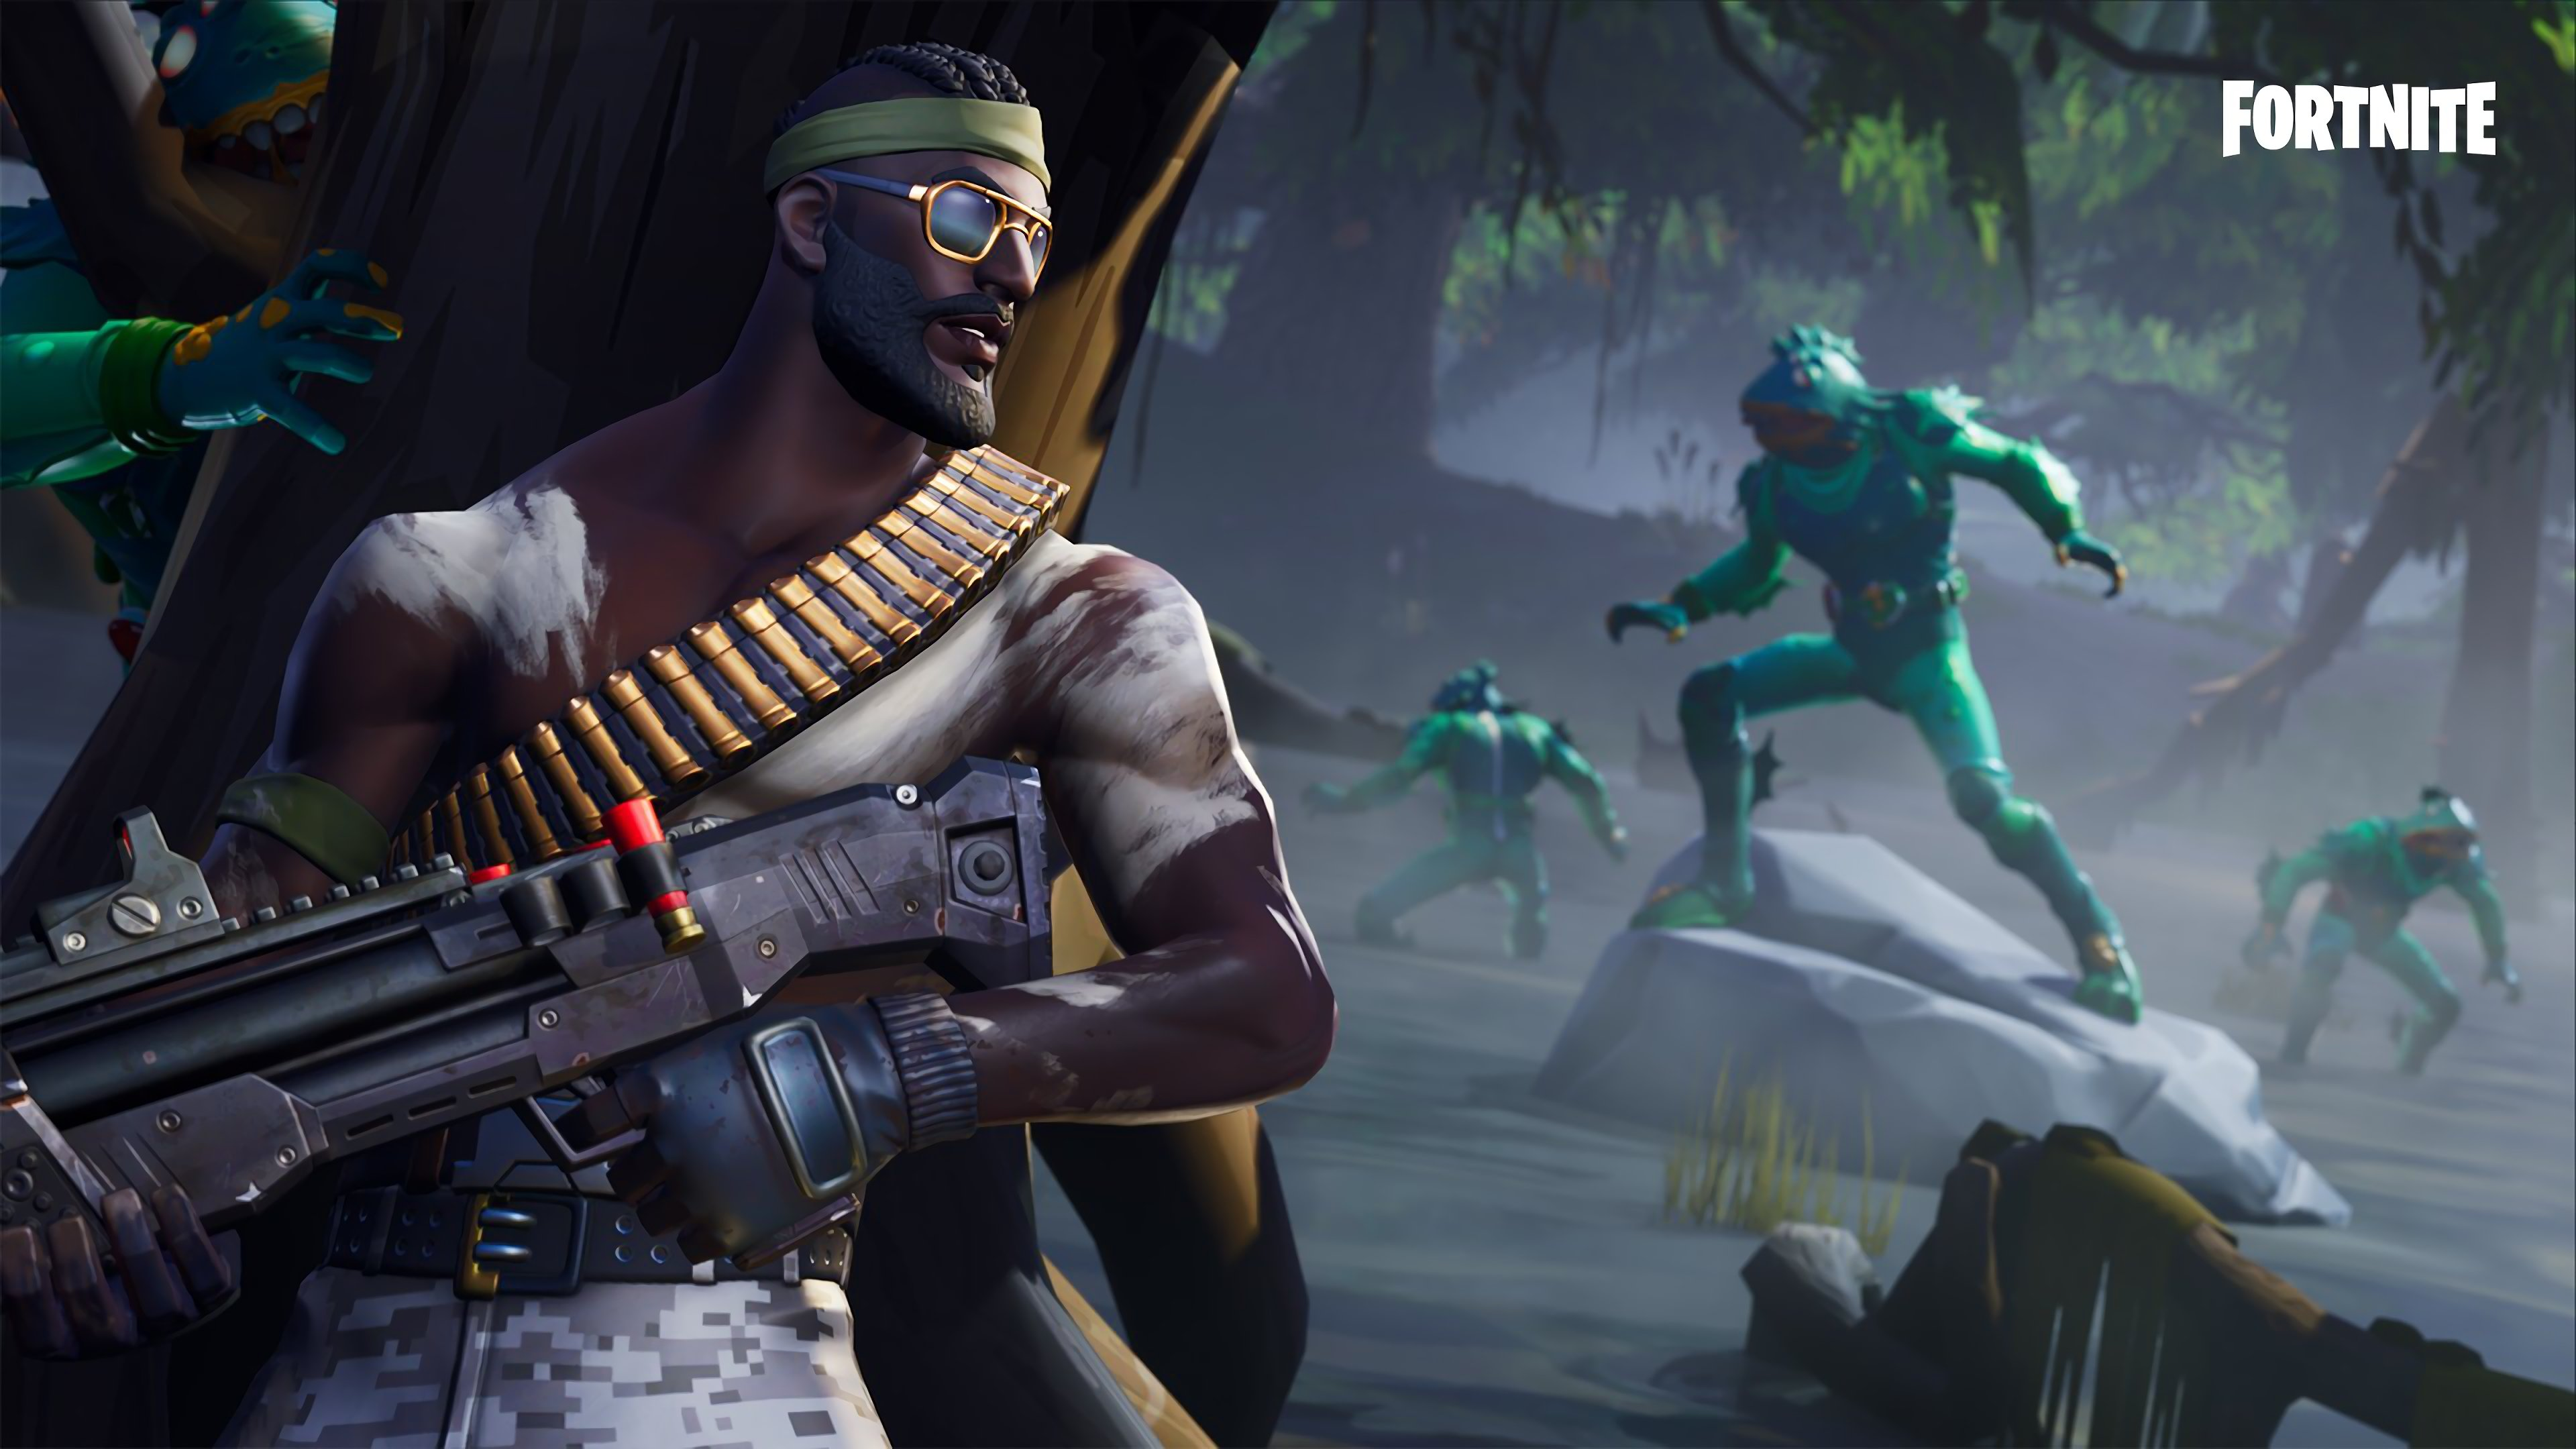 Moisty Merman 4K 8K HD Fortnite Battle Royale Wallpaper 3840x2160